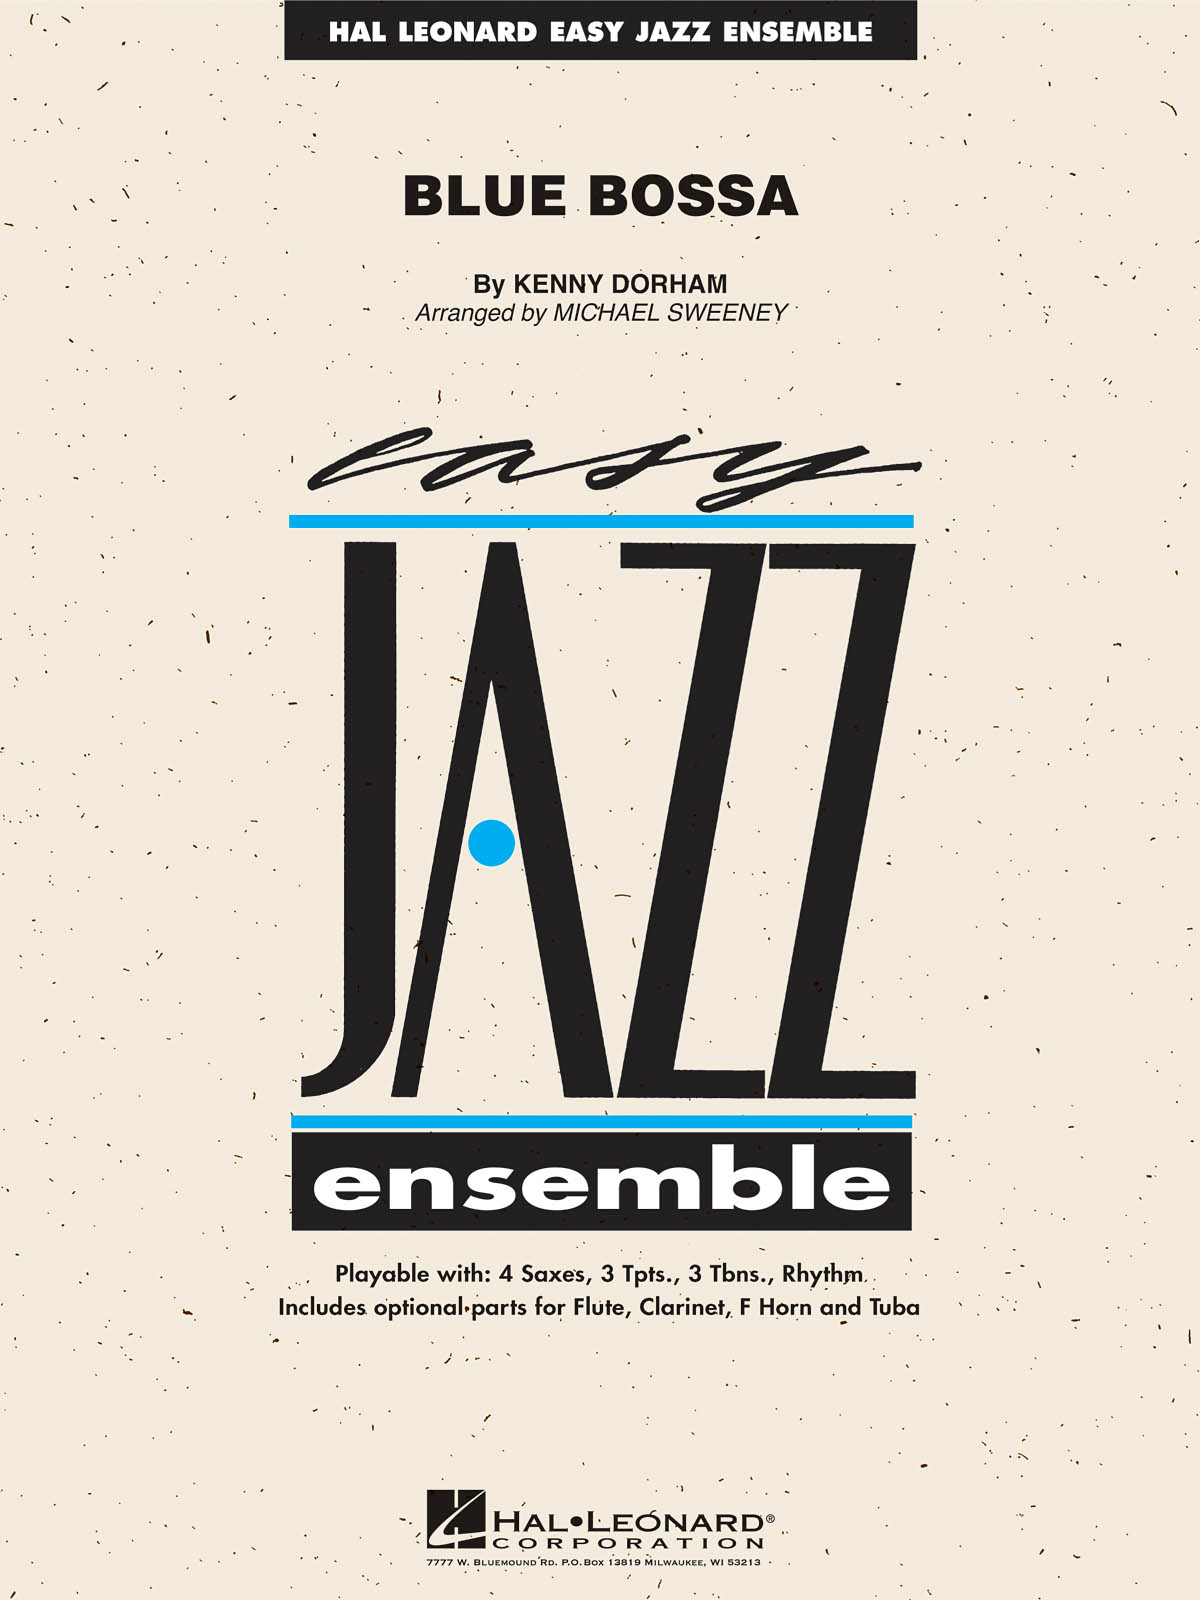 Blue Bossa: Easy Jazz Ensemble